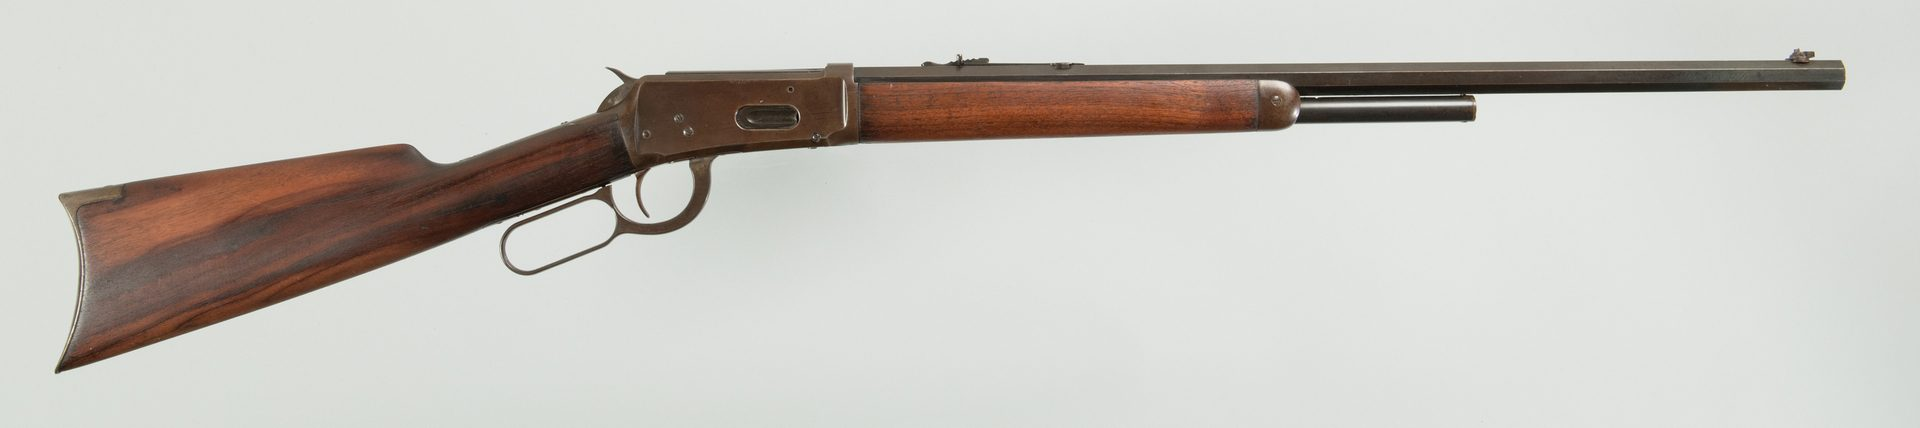 Lot 827: Winchester Model 1894 30-30 Win Lever Action Rifle